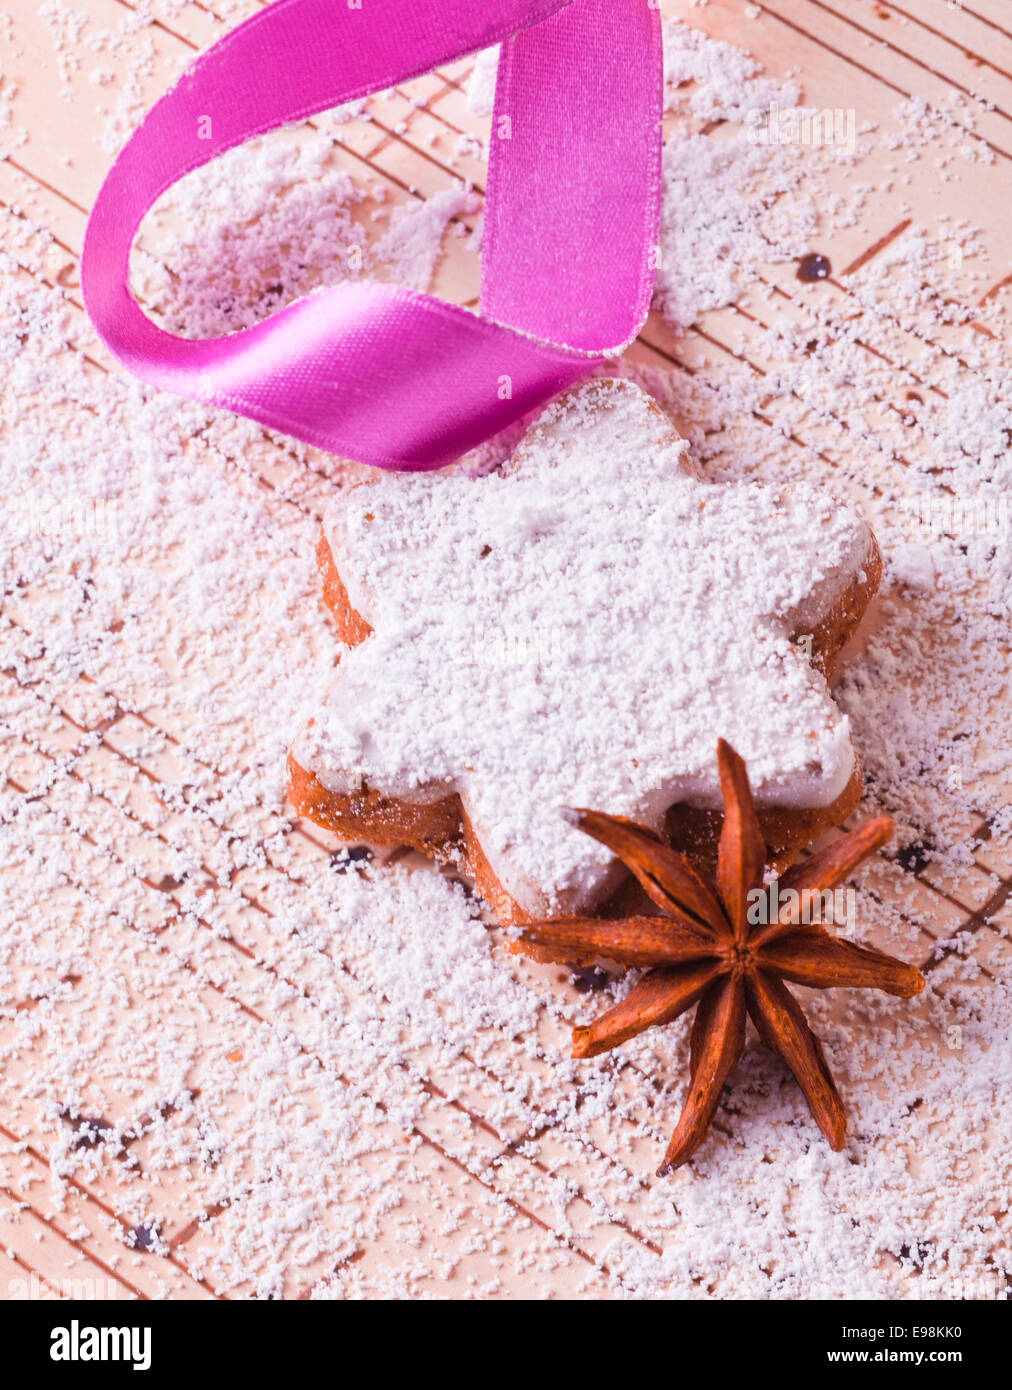 X-mas cookie with a pink bow and icing sugar and one anise - Stock Image